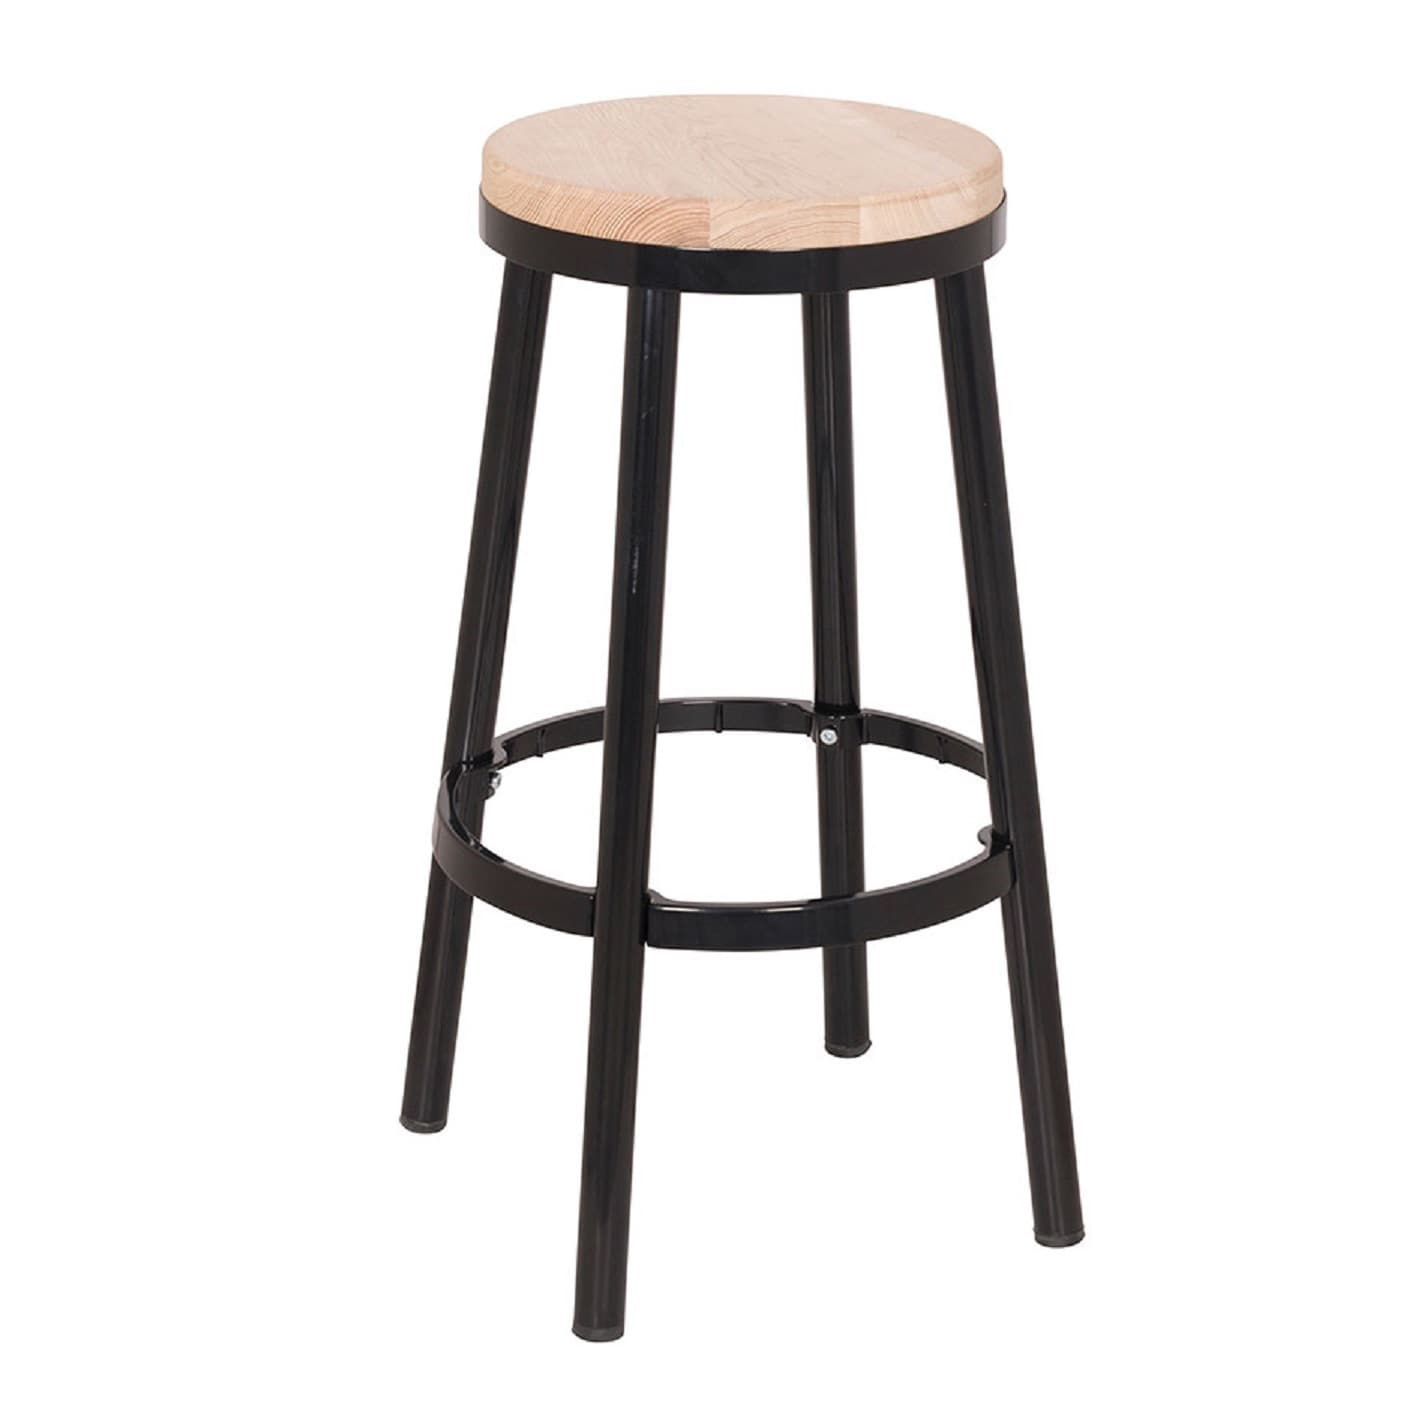 Shop modern round backless metal and ash wood 26 inch bar stool free shipping today overstock com 9043905